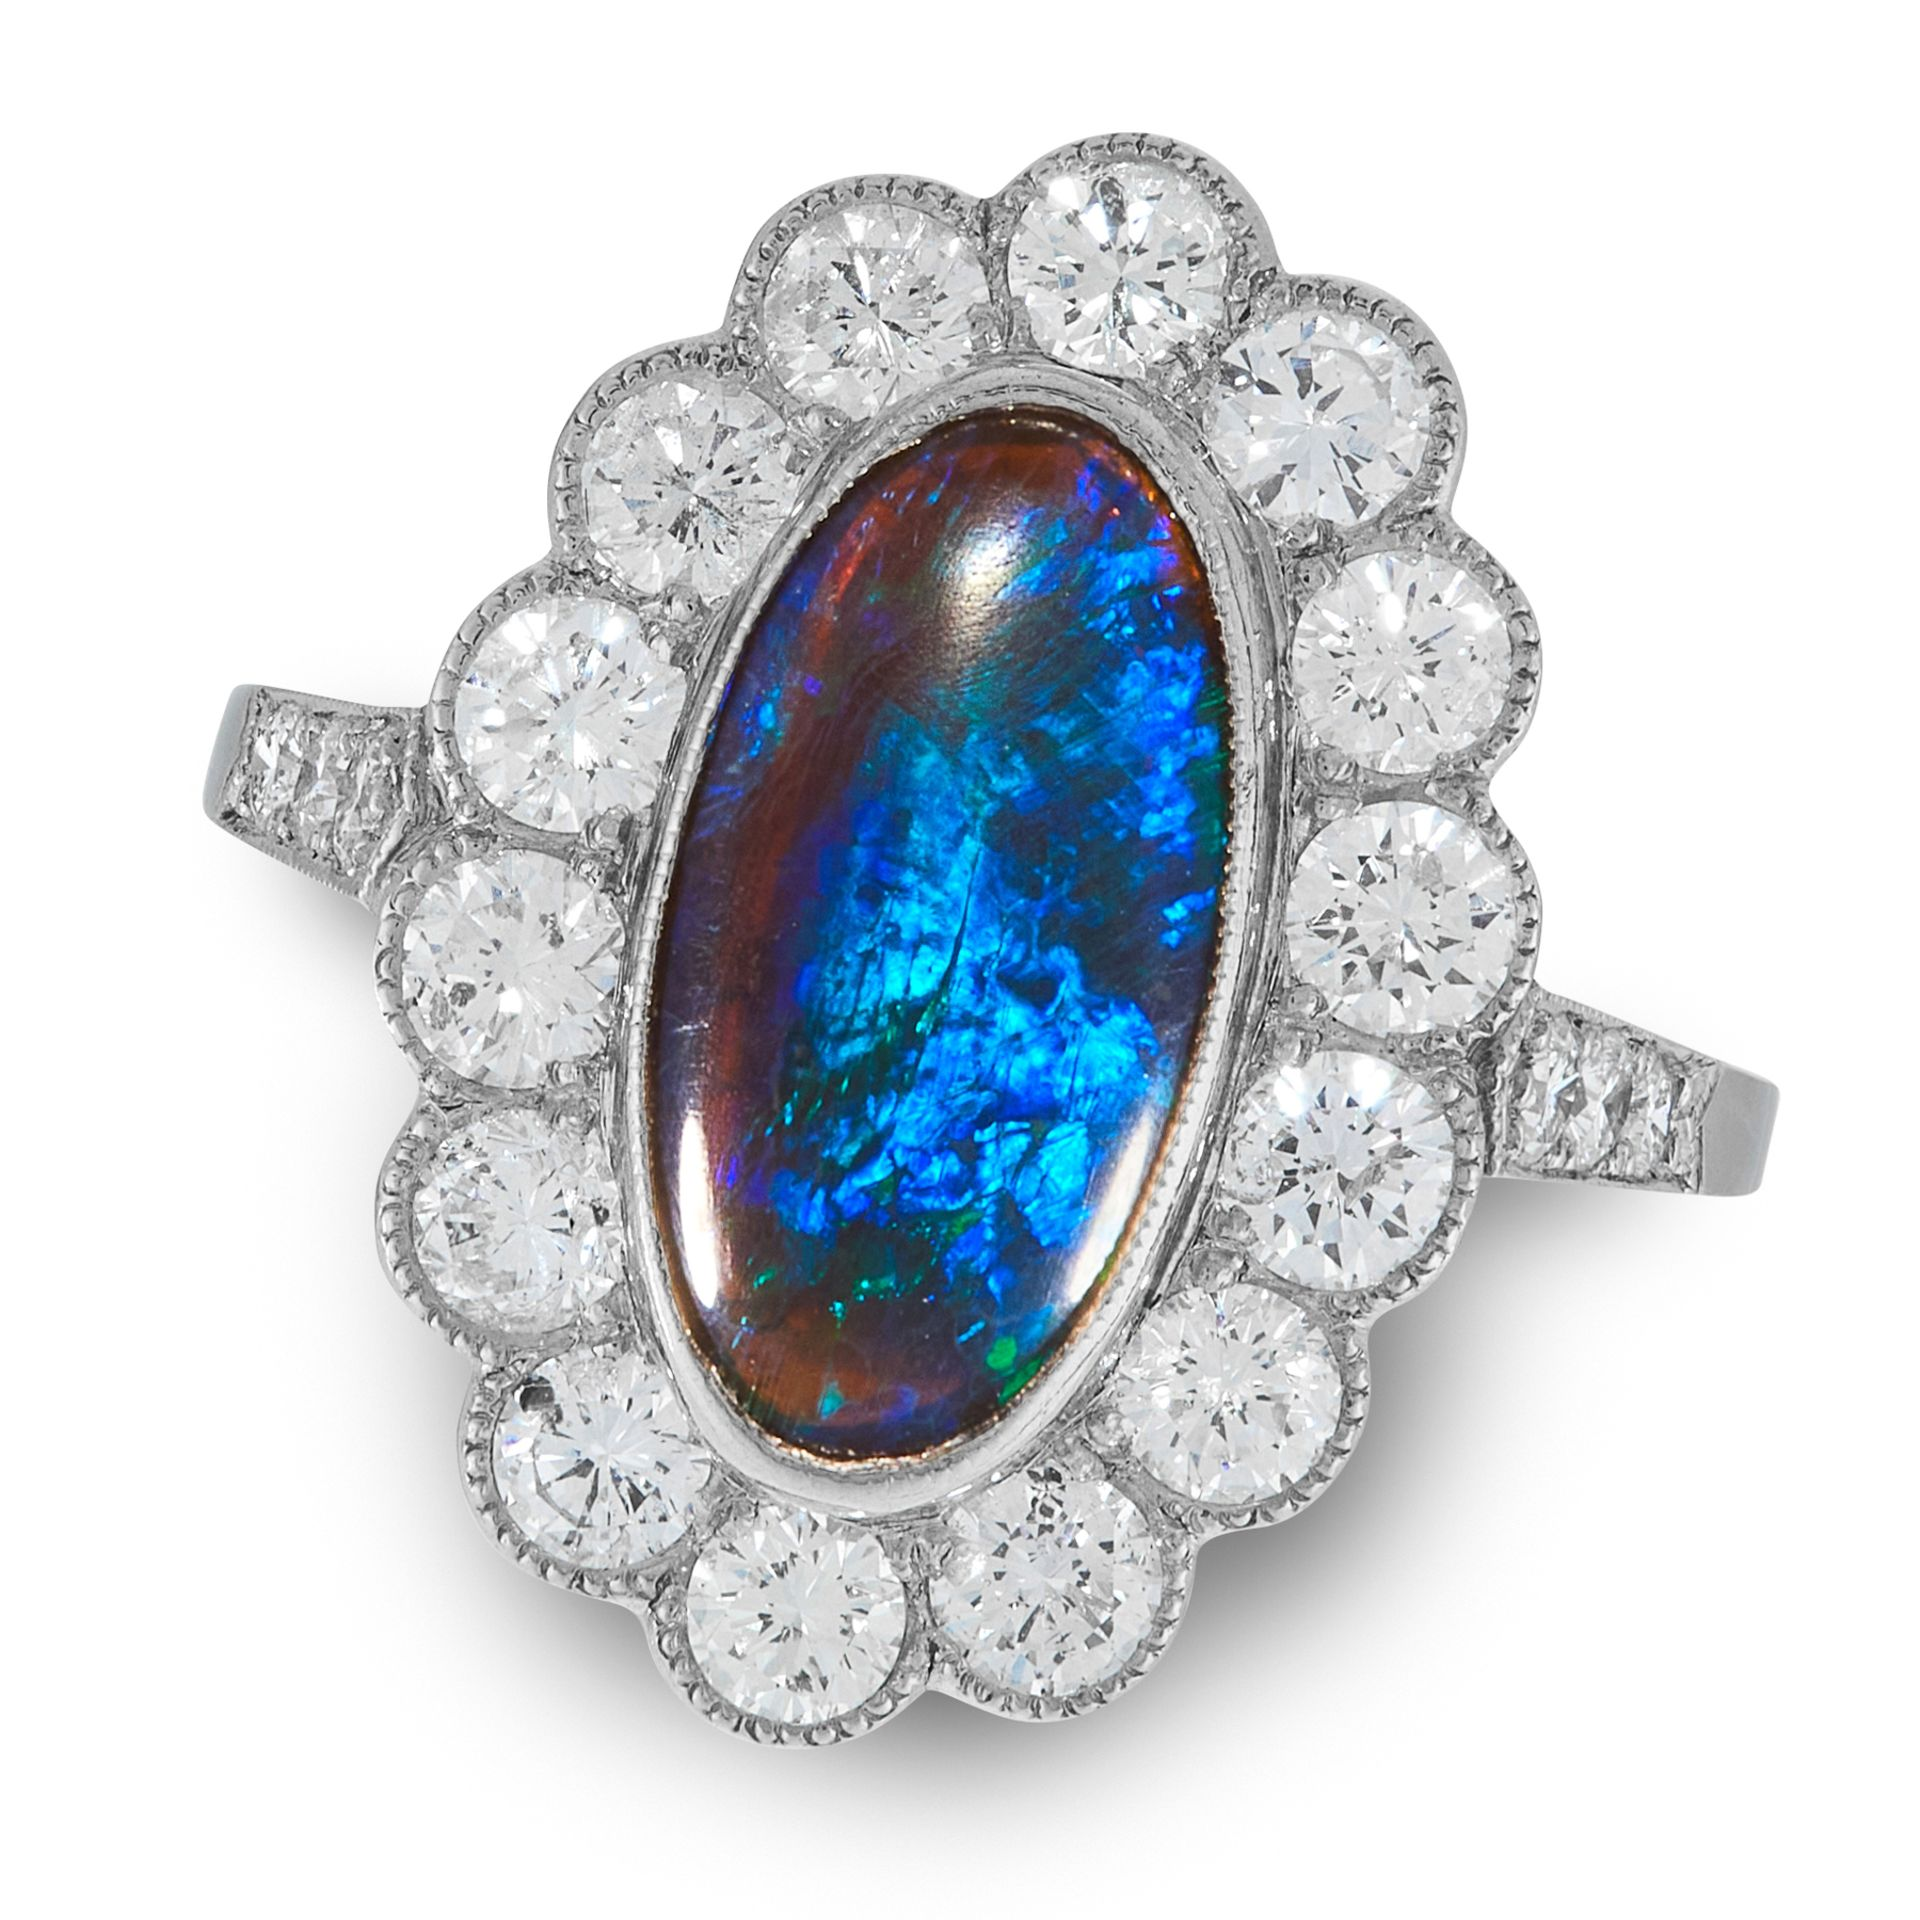 A BLACK OPAL AND DIAMOND CLUSTER RING in white gold or platinum, set with an oval cabochon black